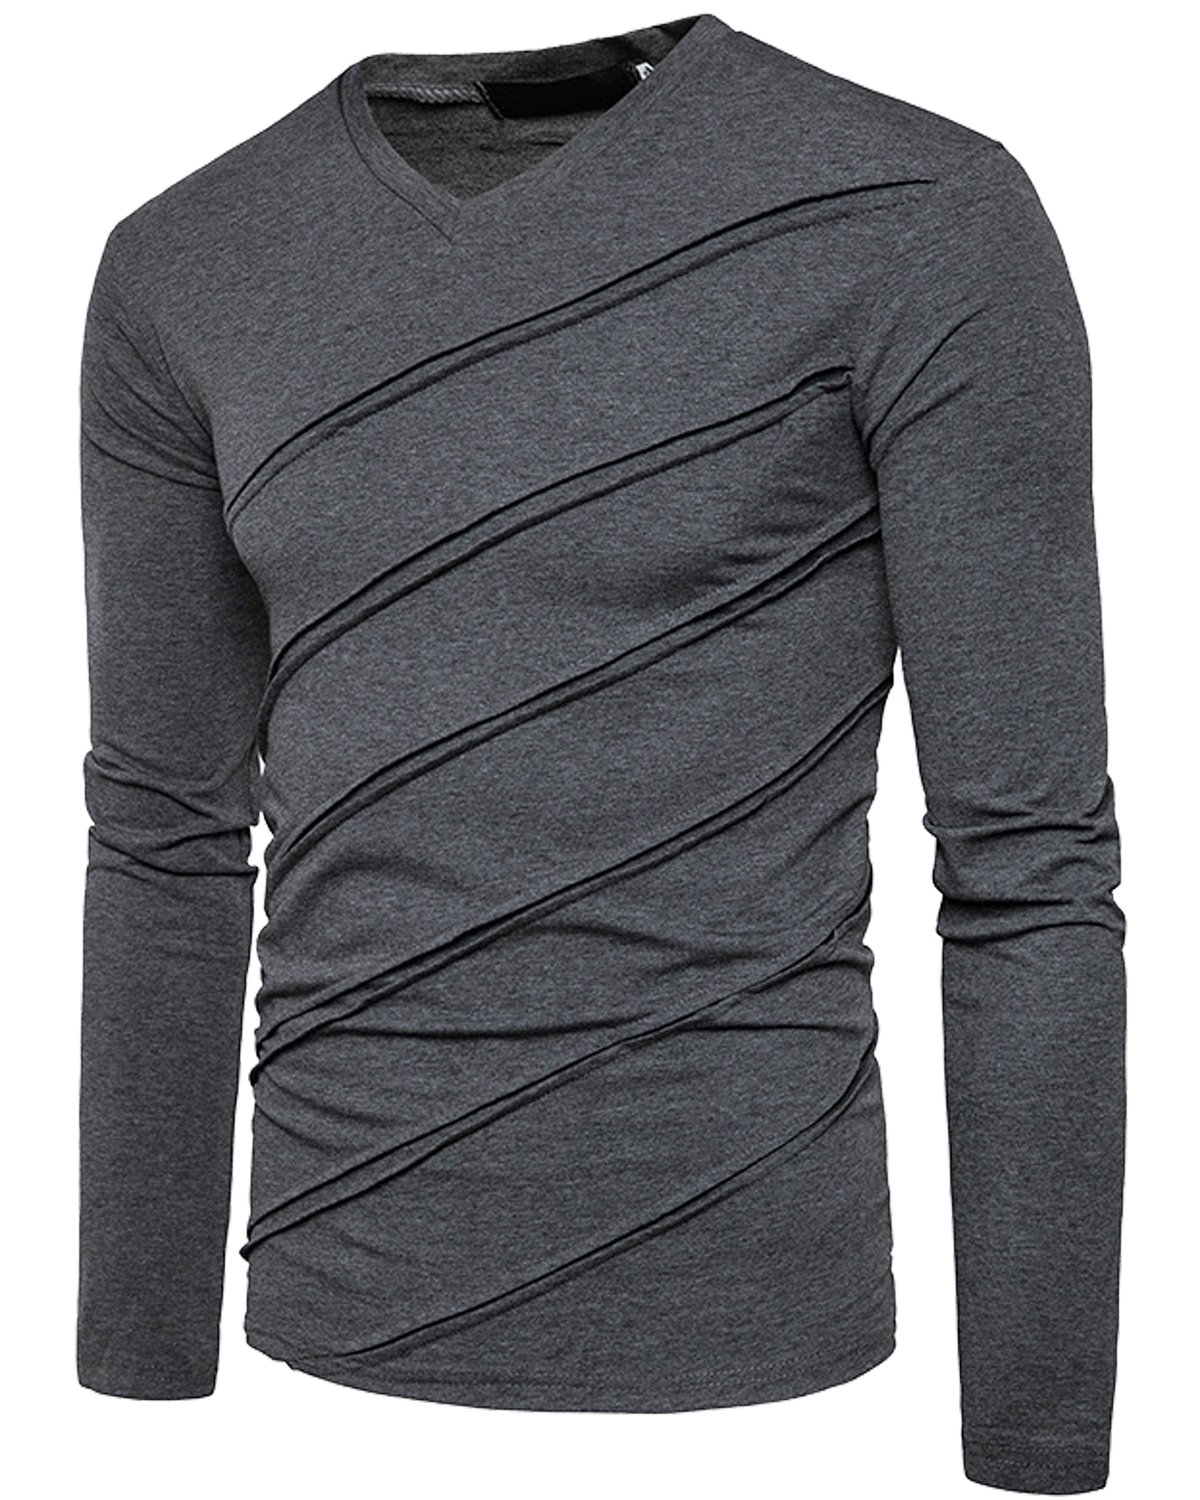 Men's Casual Long Sleeve Striped T-Shirt, Winter Fashion Cotton Solid V Neck Tee Dark Grey Small